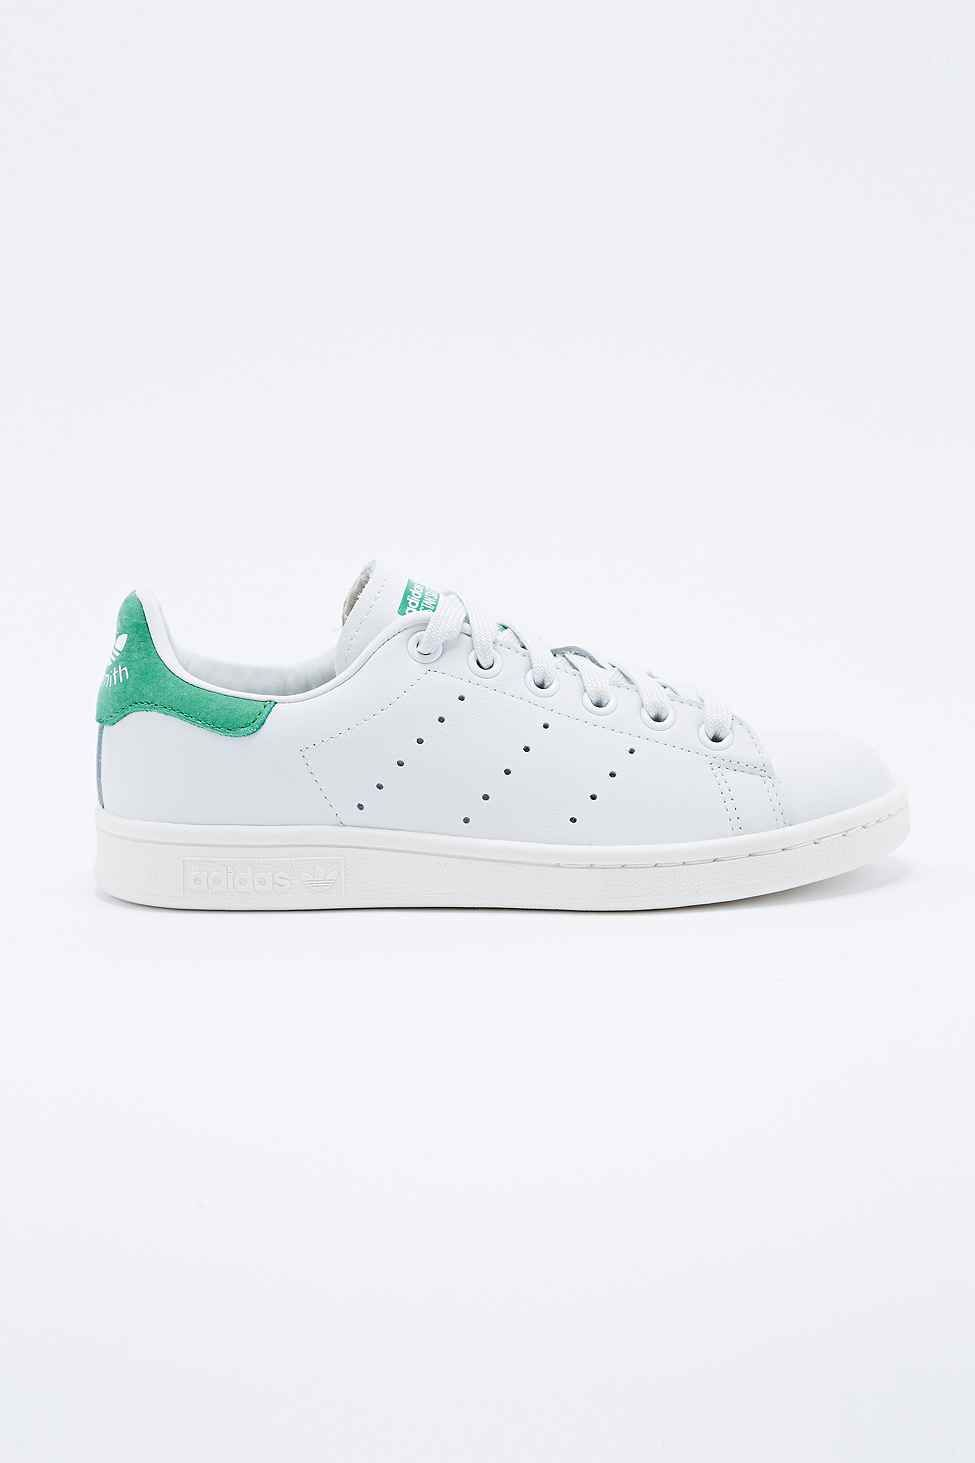 separation shoes c8920 c598b Adidas - Baskets Stan Smith blanches - Urban Outfitters